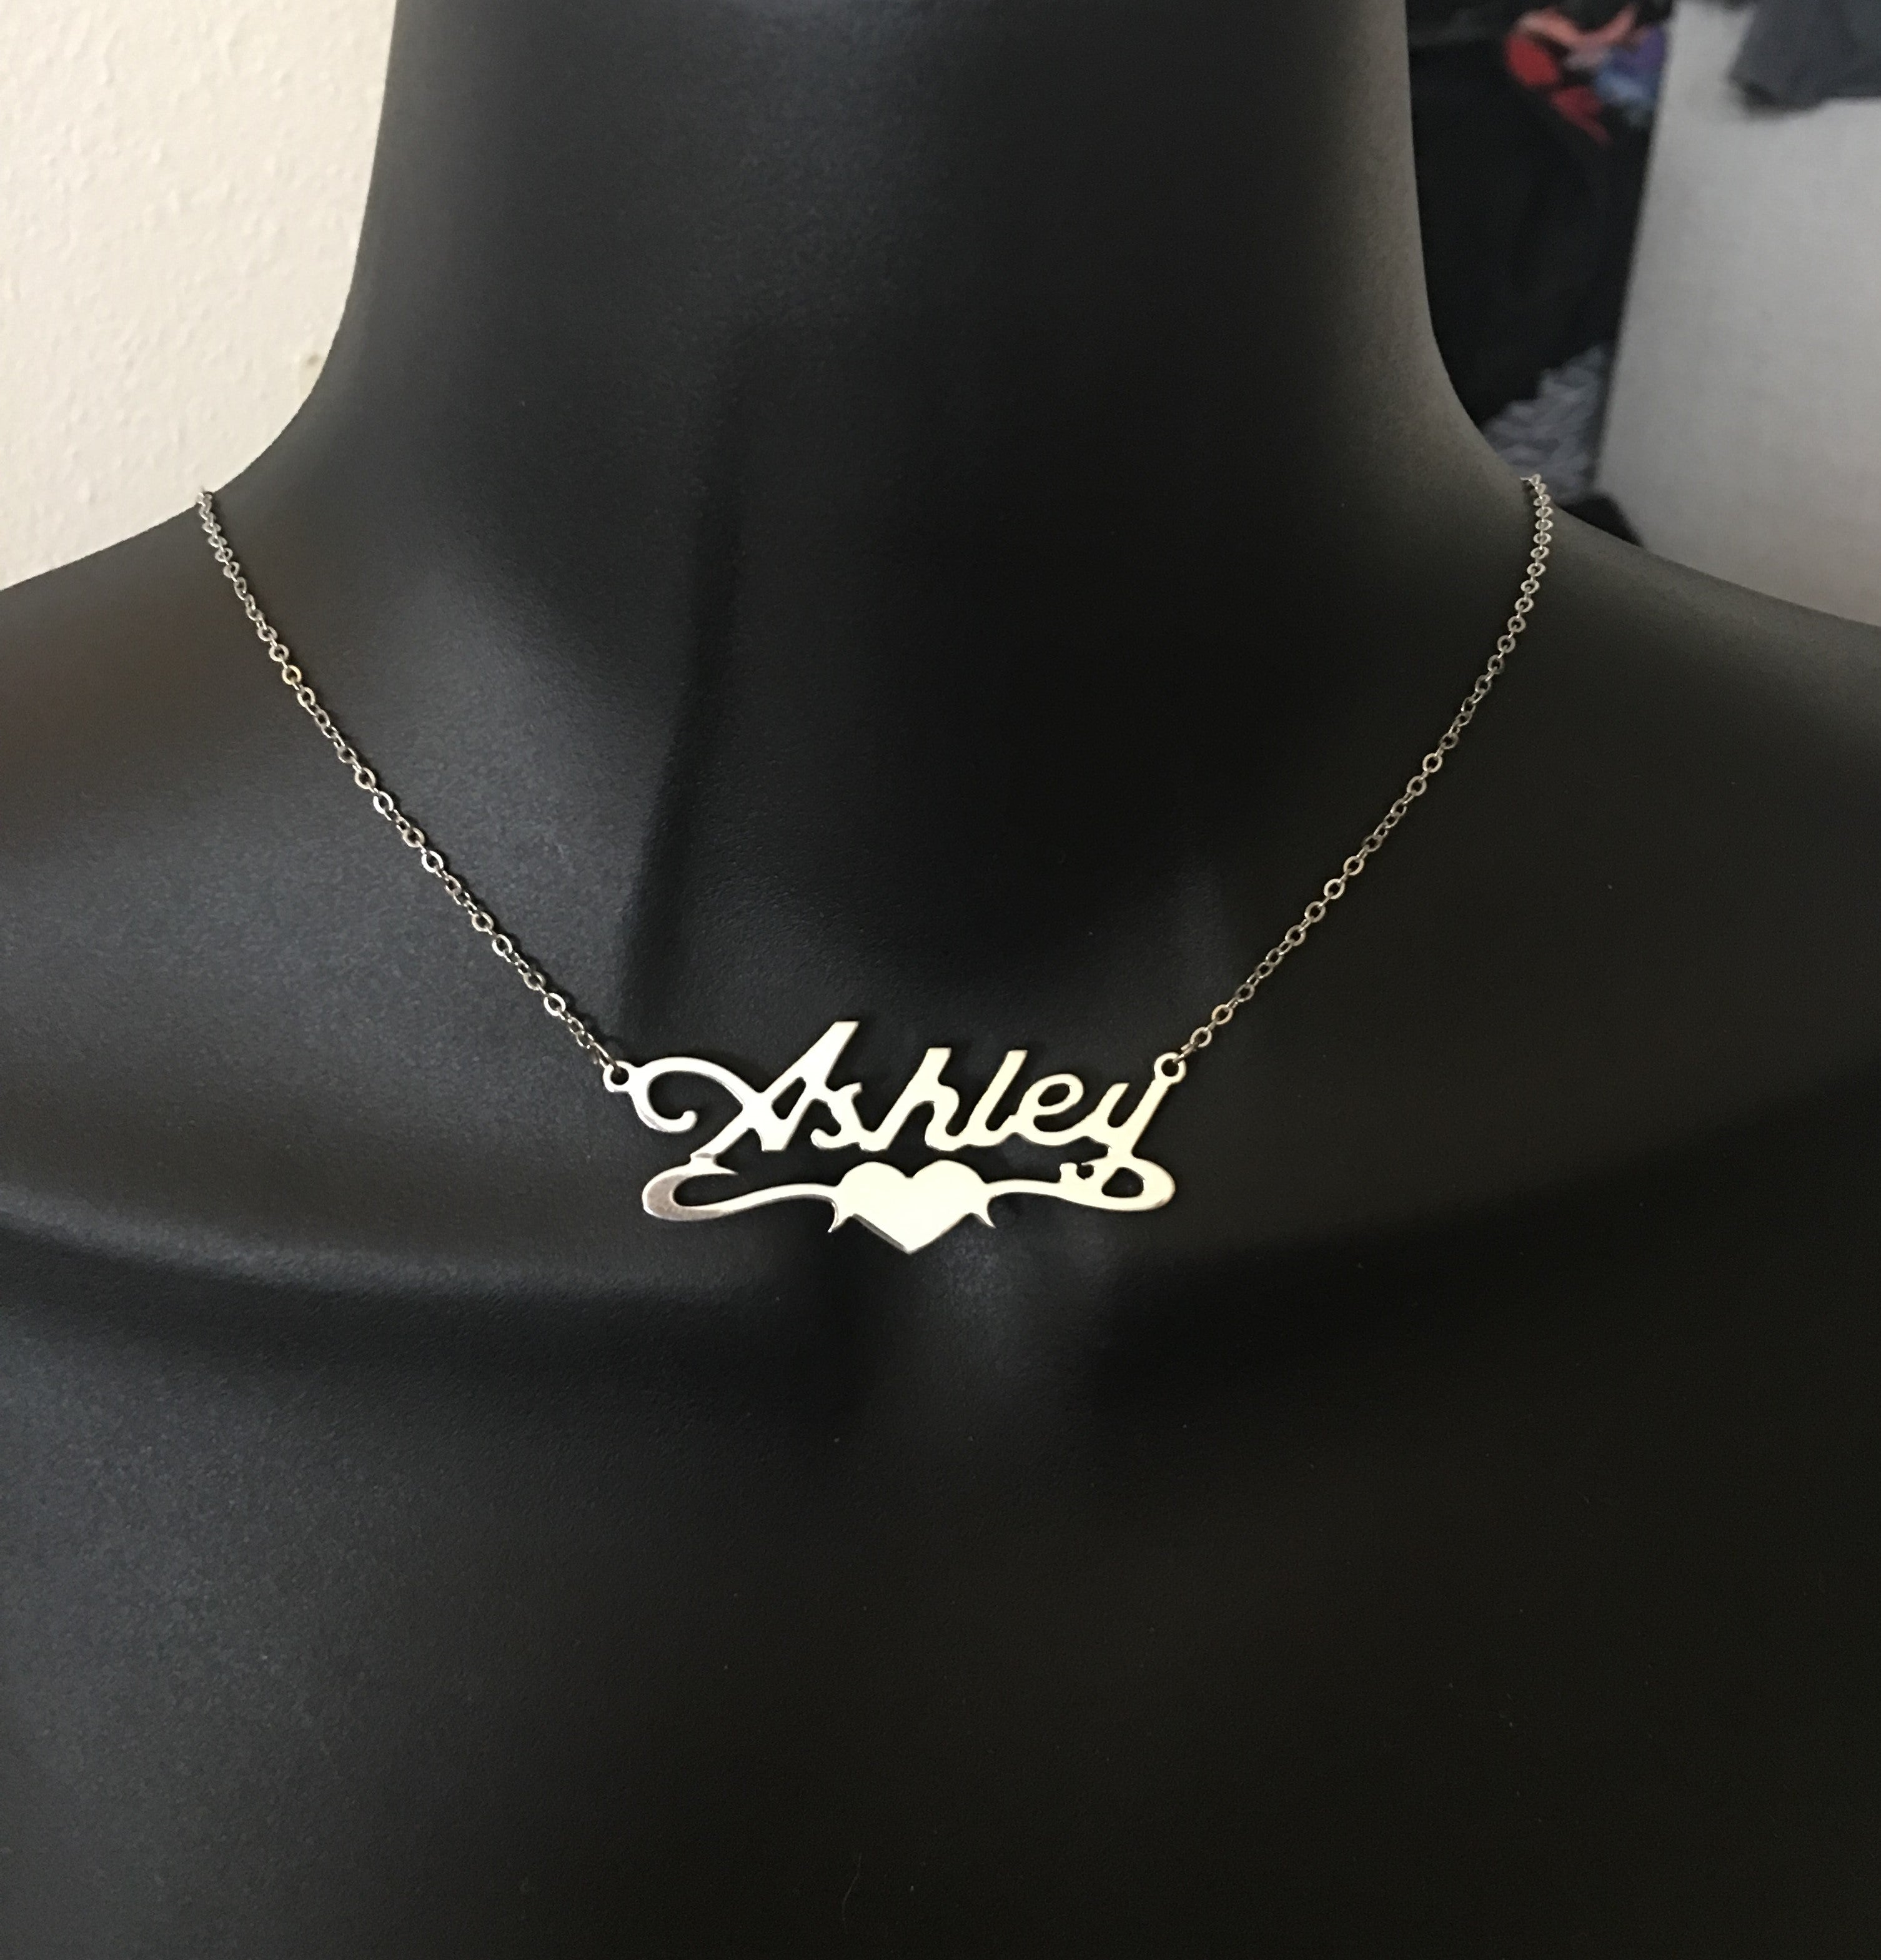 Personalized, name with heart underneath, name necklace